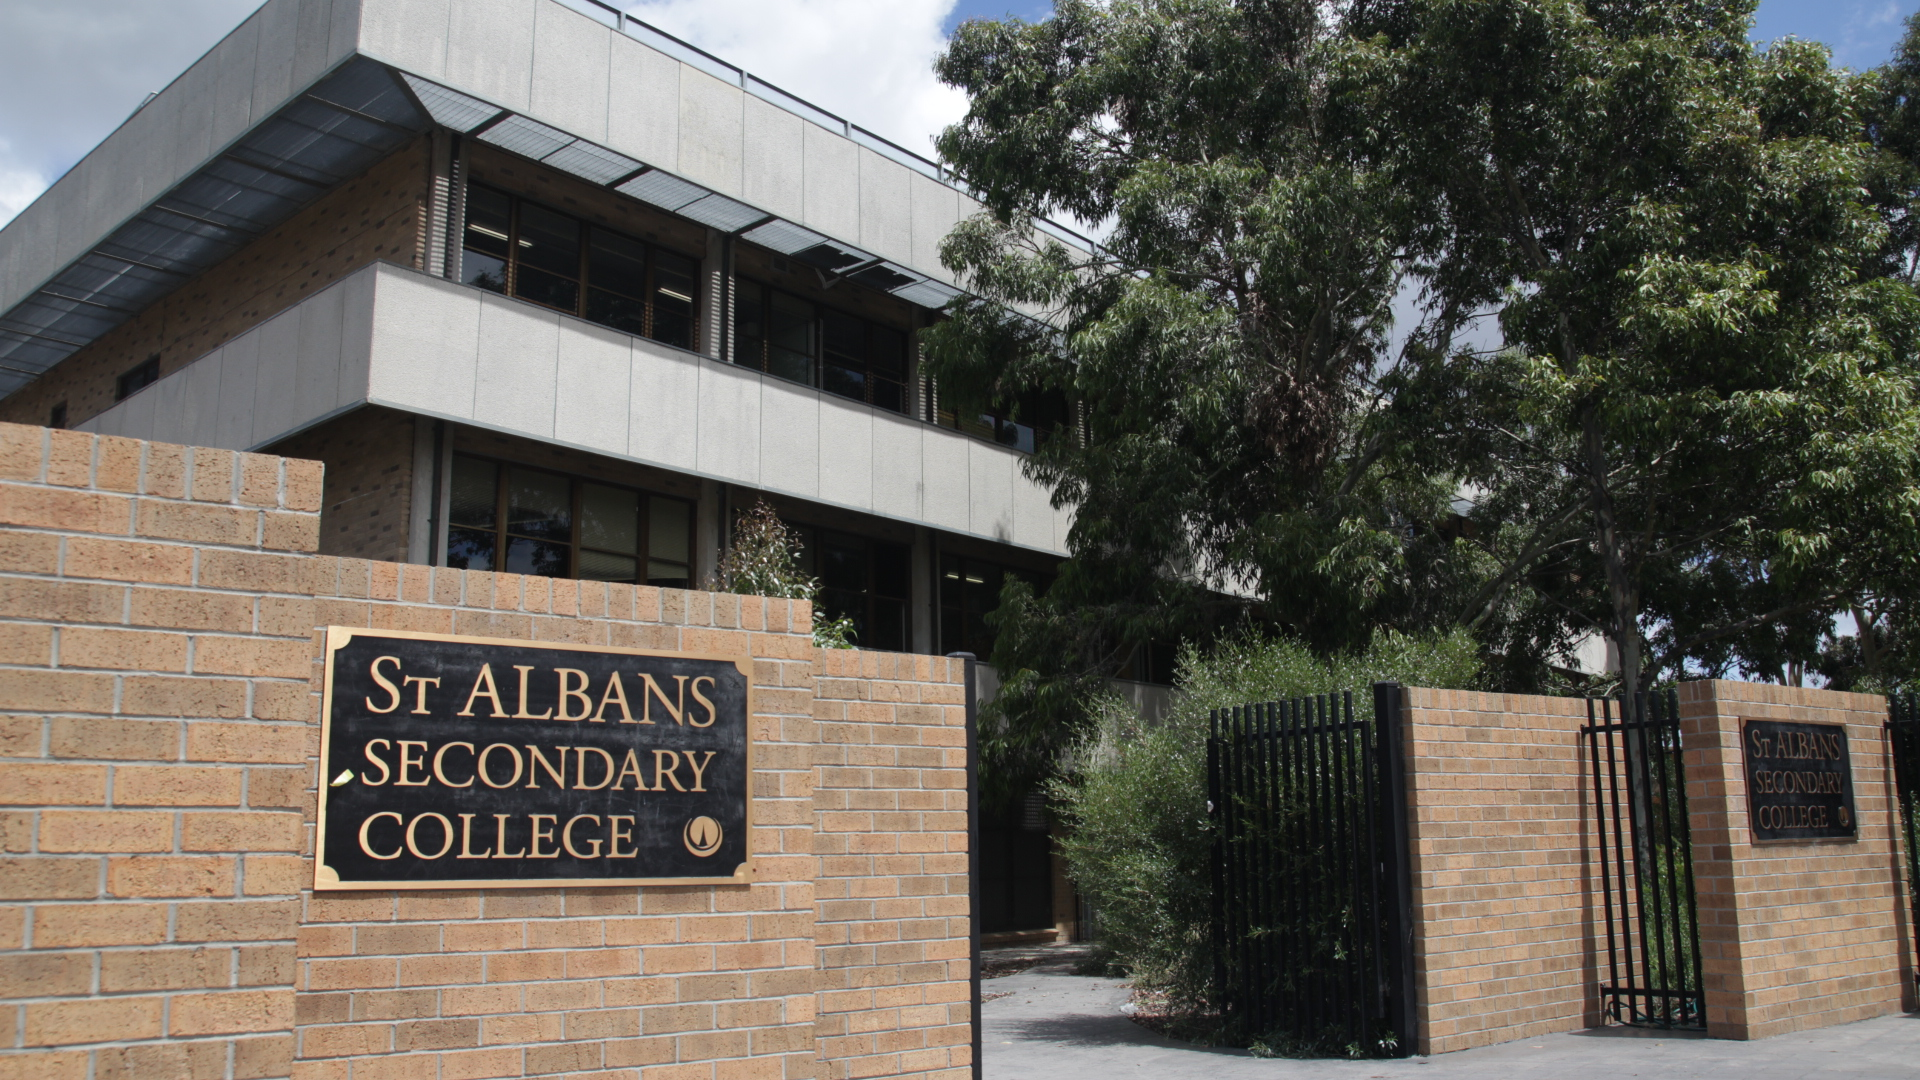 St Albans Secondary College 20